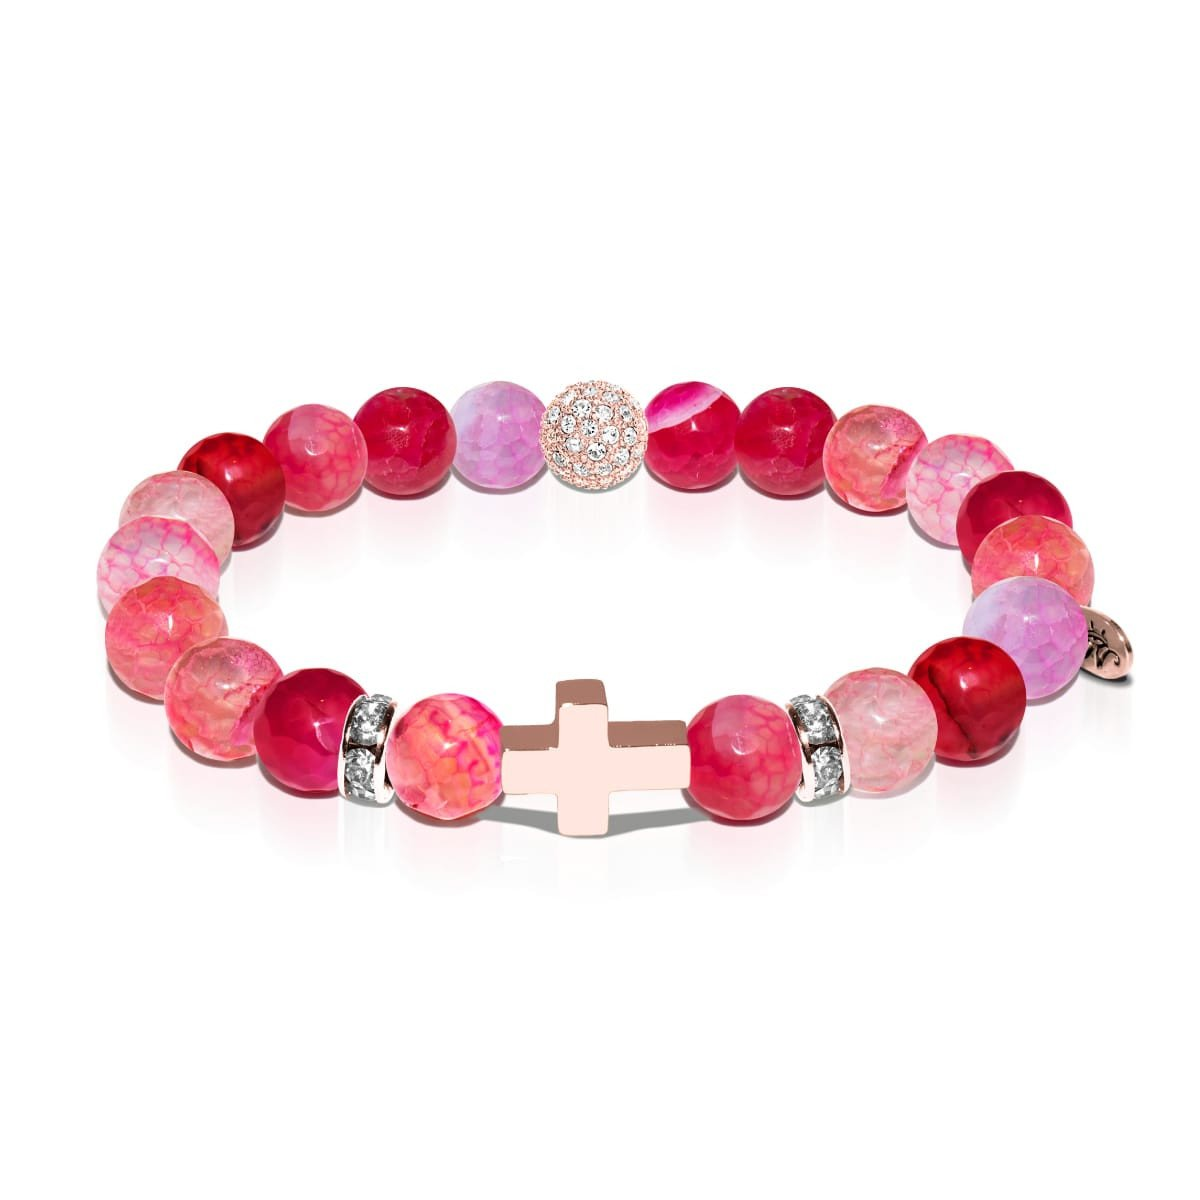 Sainte-Geneviève | Croix en or rose | Bracelet agate grain de dragon rose